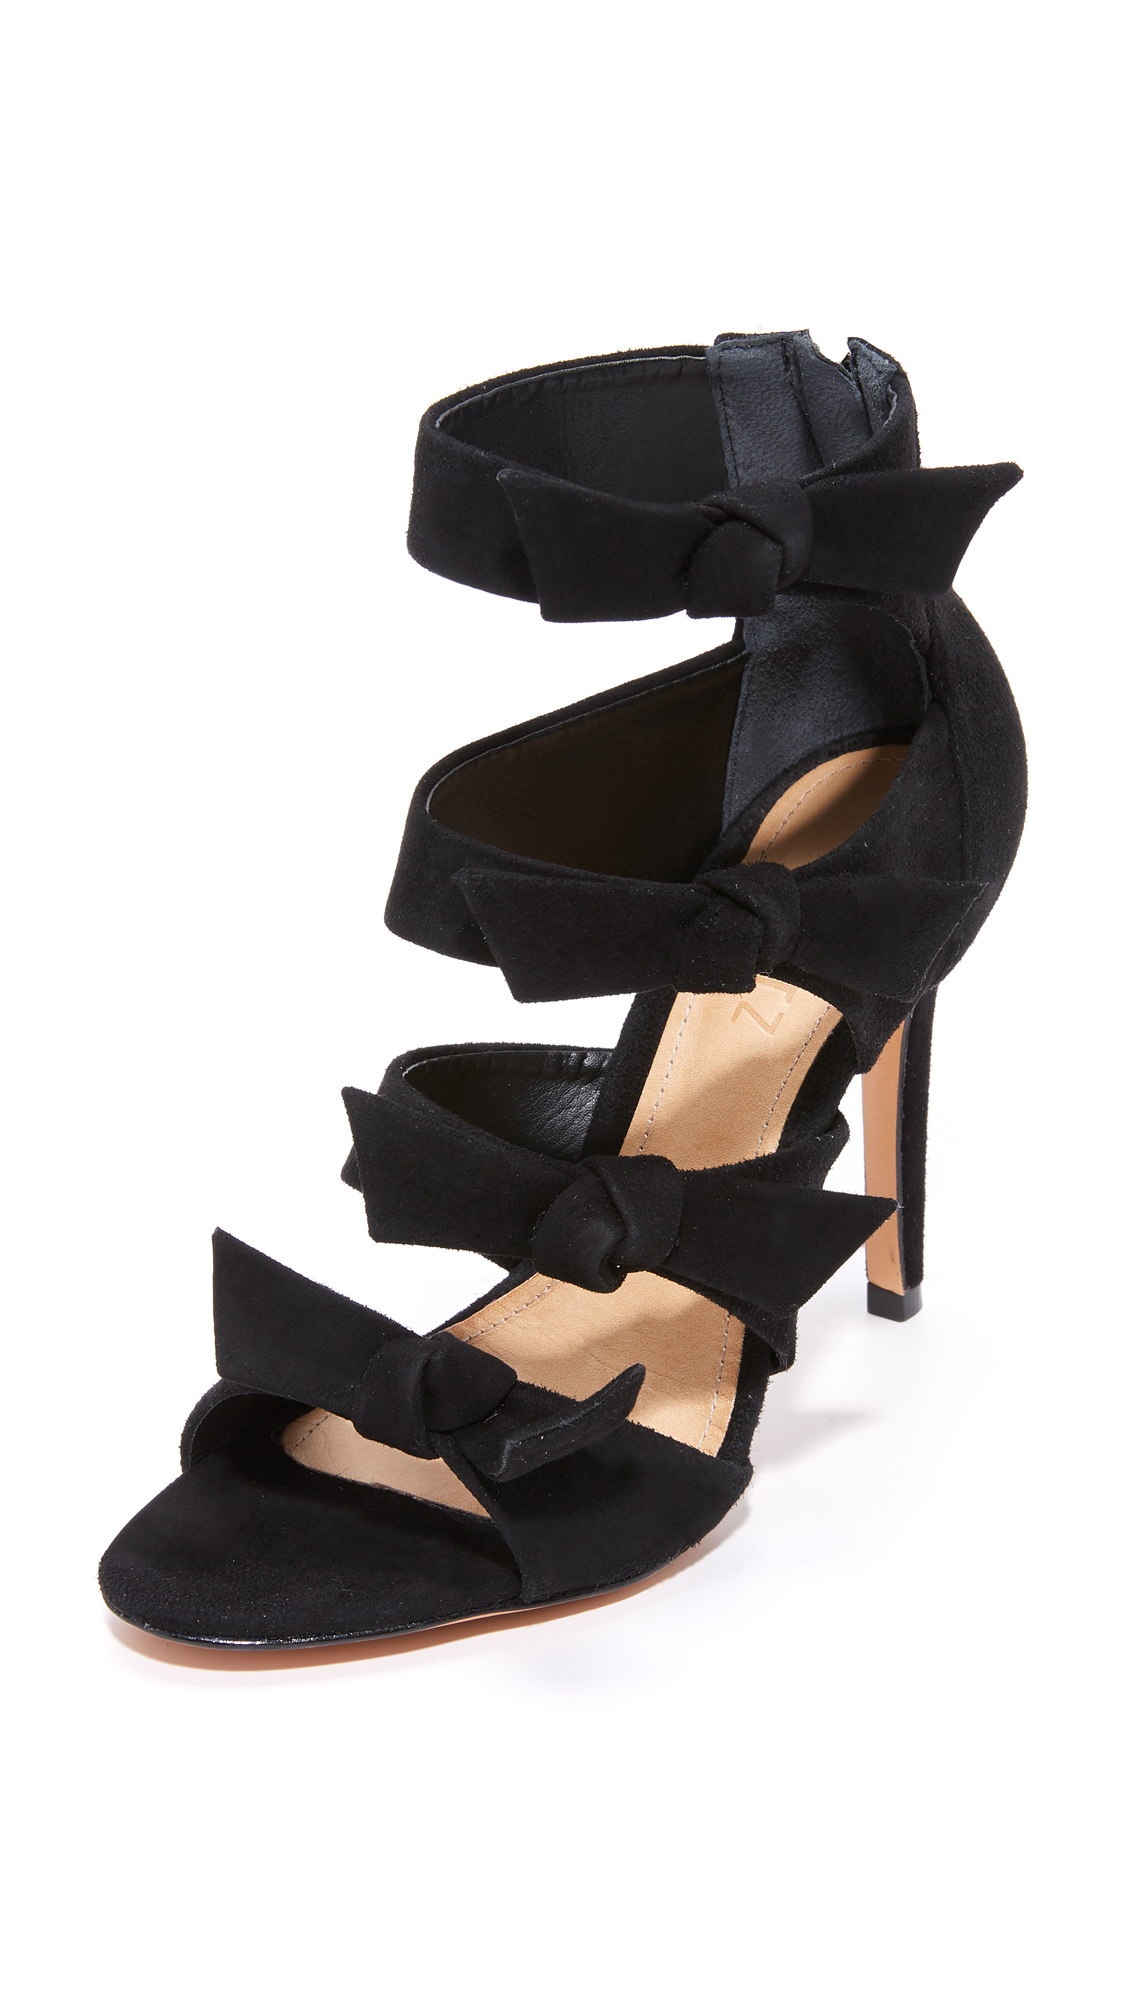 Schutz Miranda Bow Sandals - Black